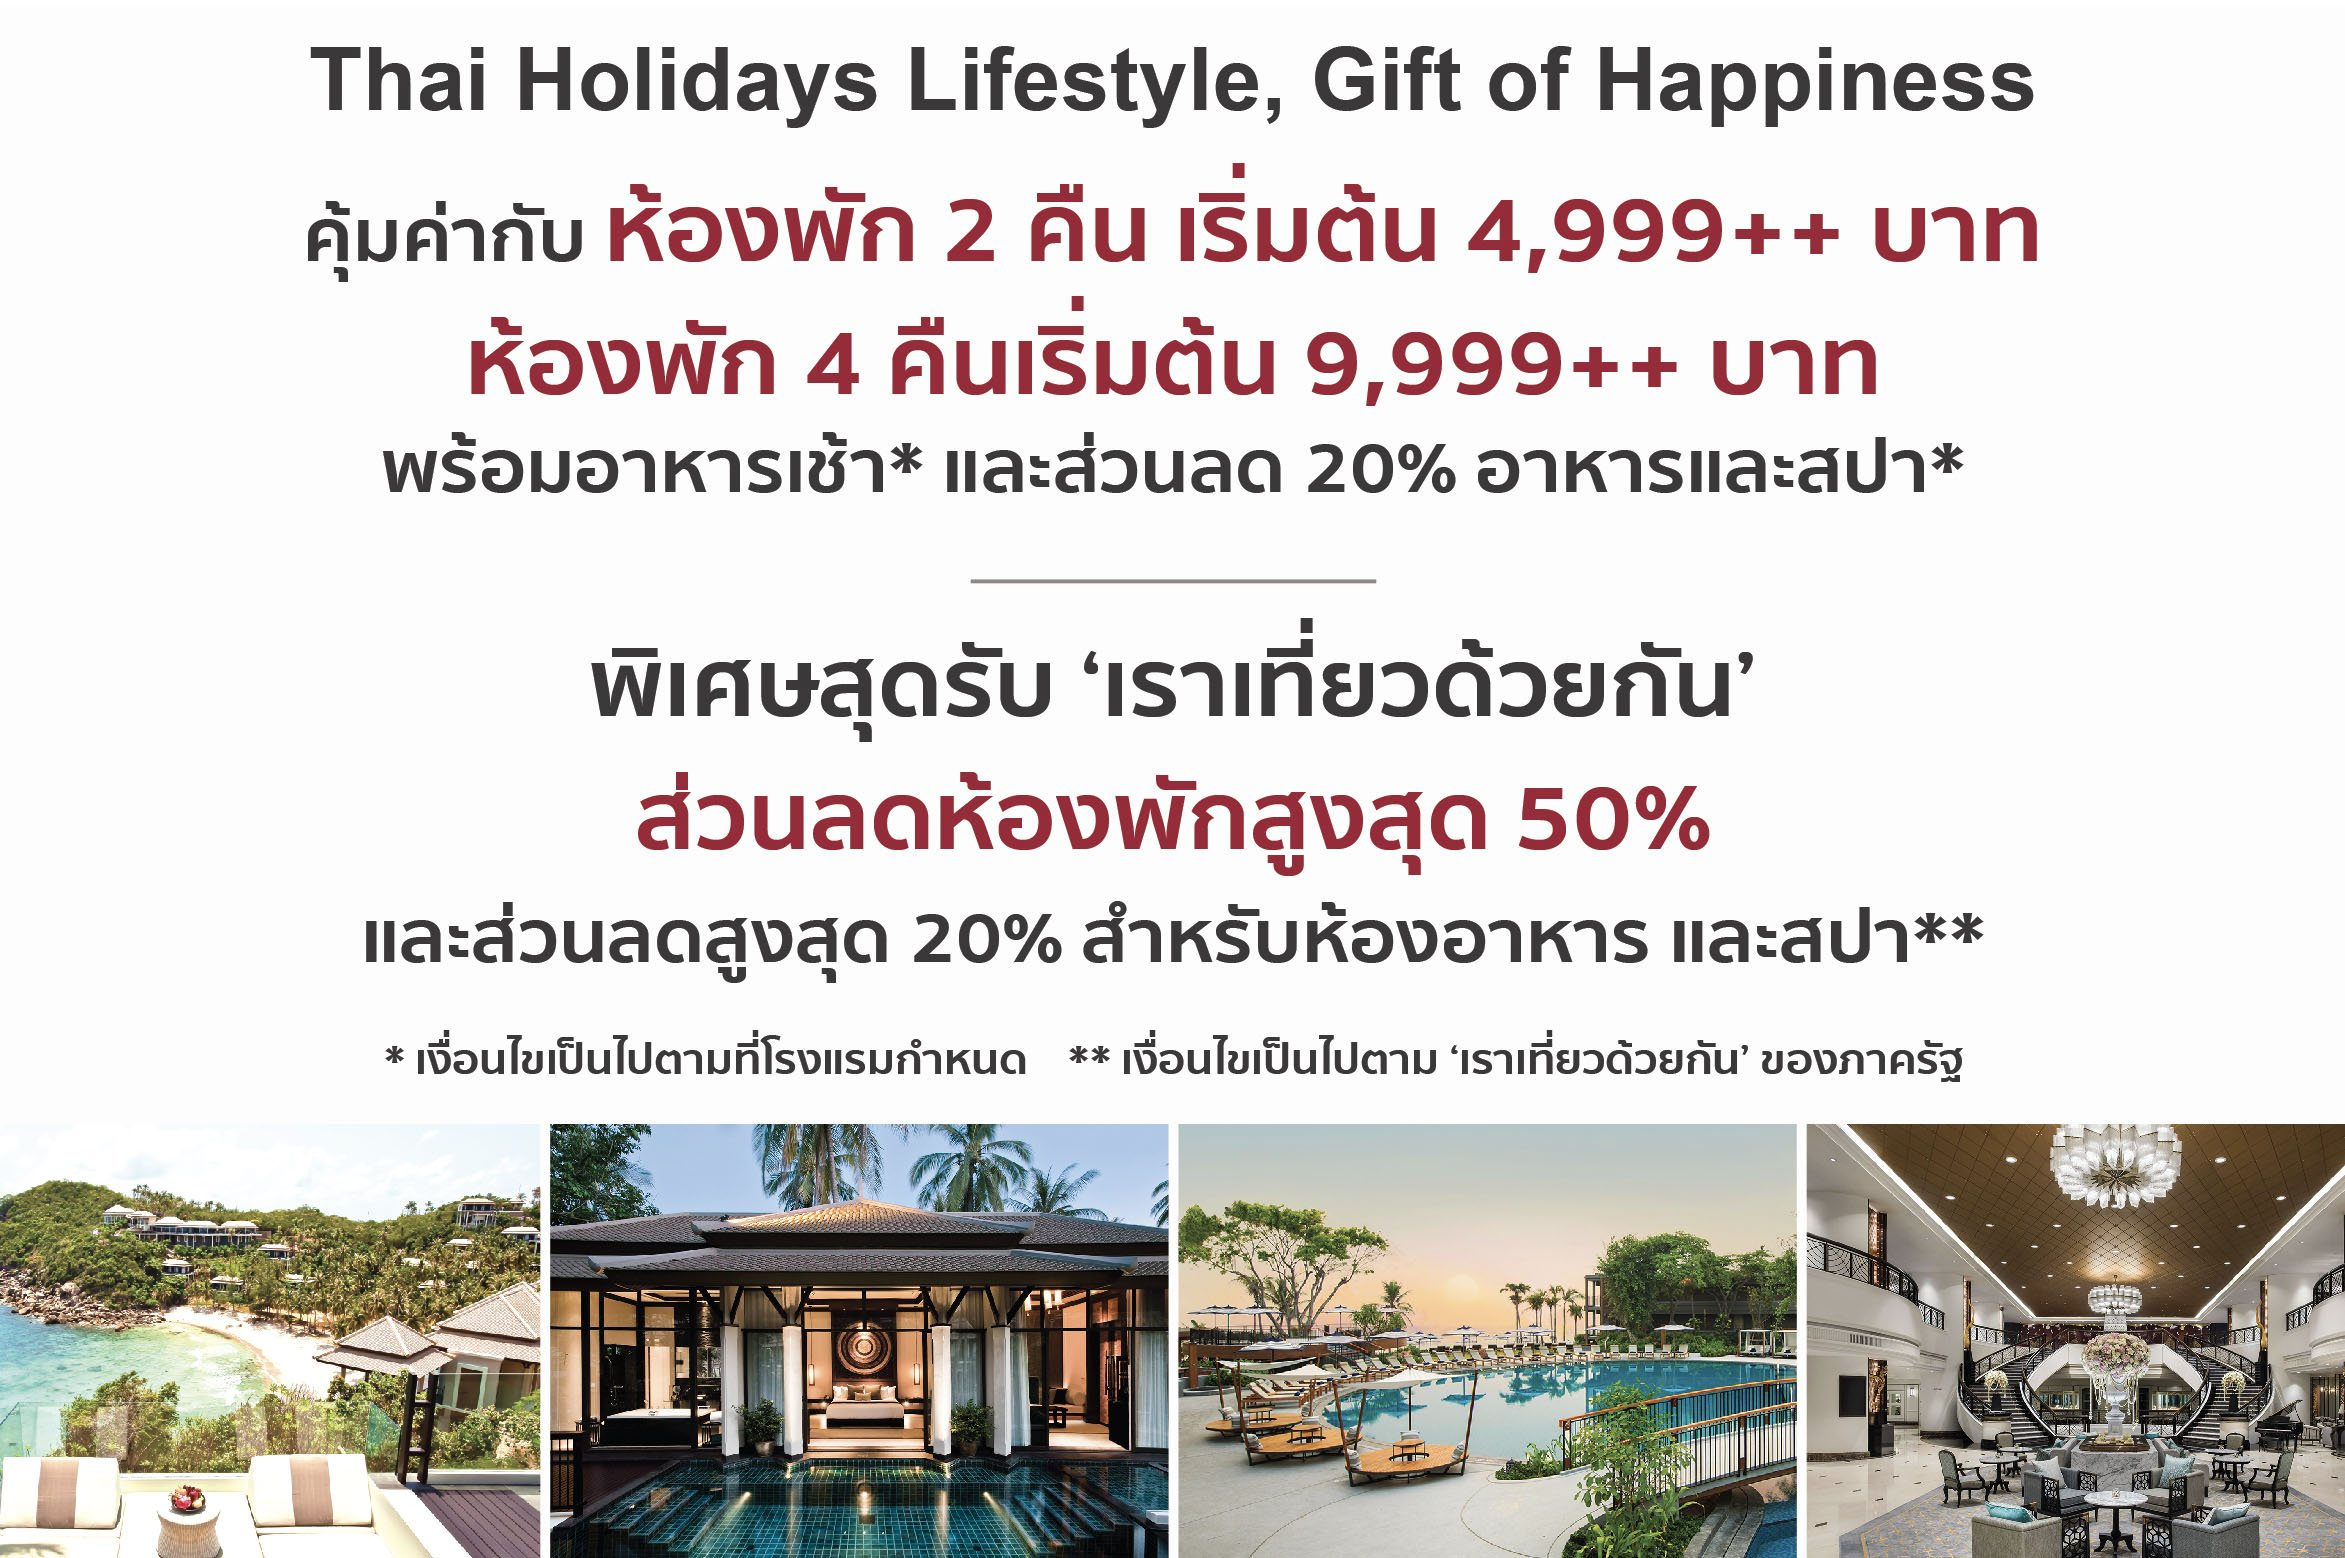 AWC celebrates the re-opening of its 16 affiliated hotels across Thailand with double special campaigns